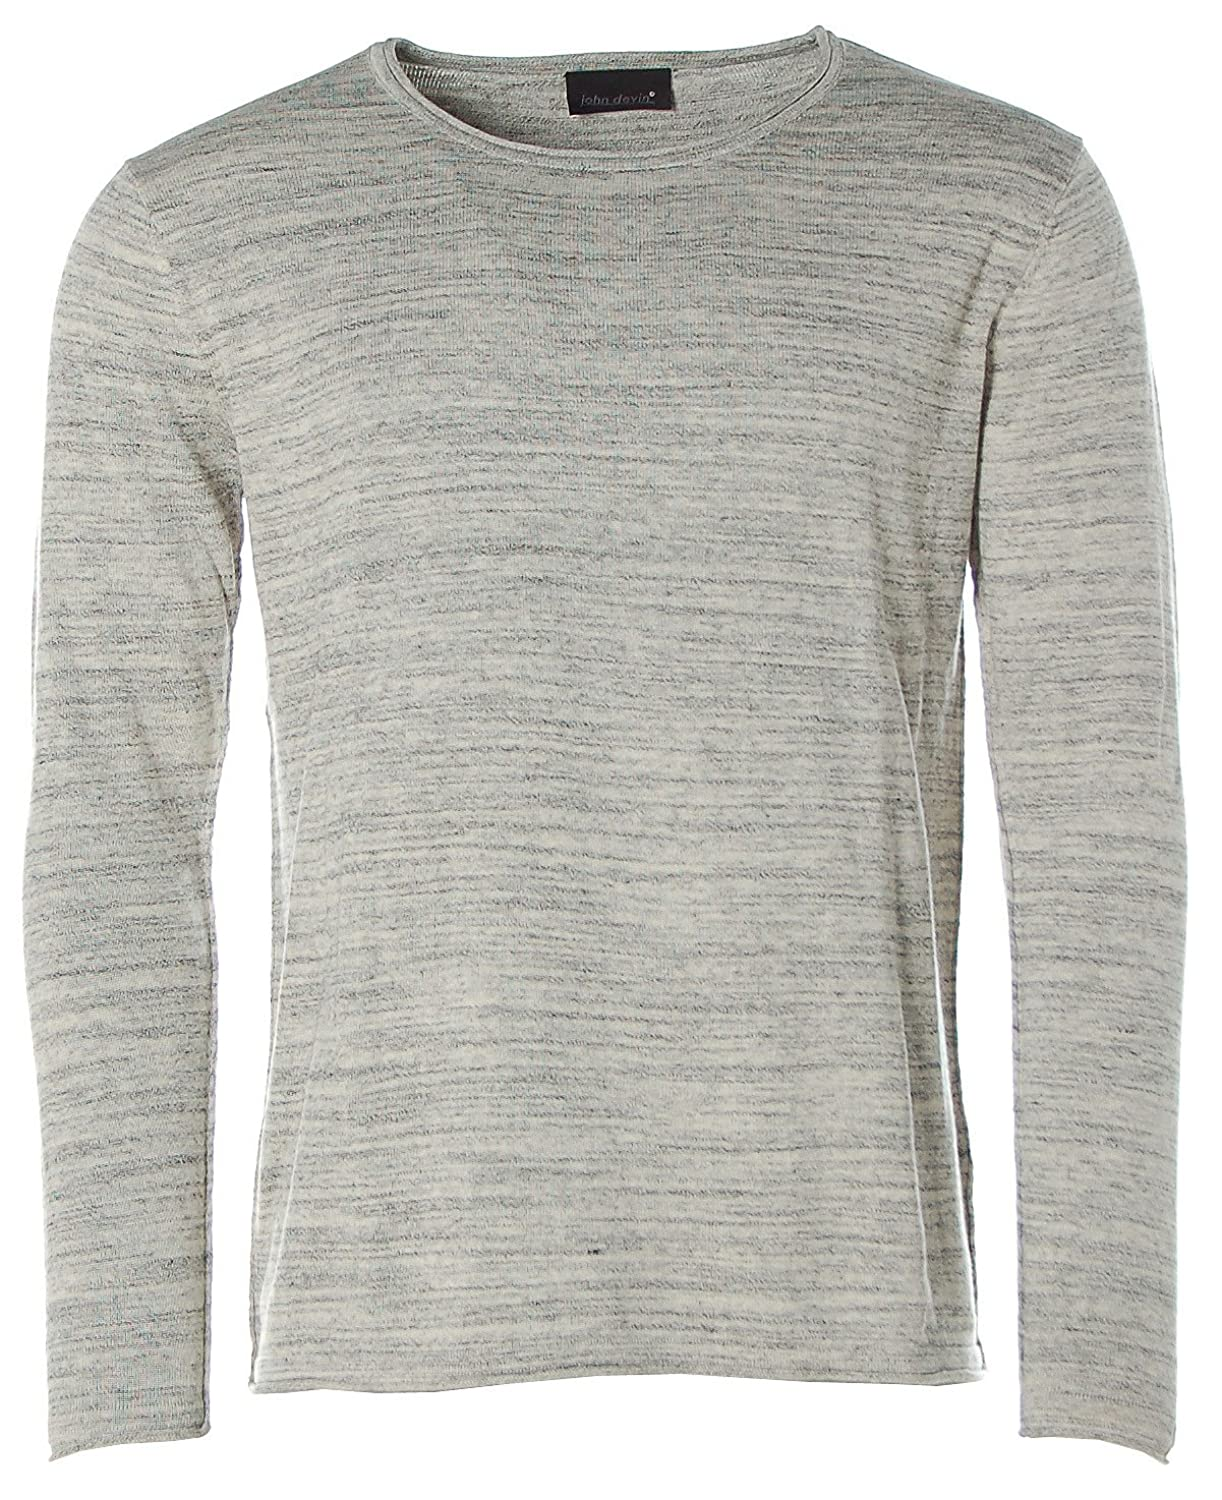 John Devin Men's Crew Neck Long Sleeve Jumper